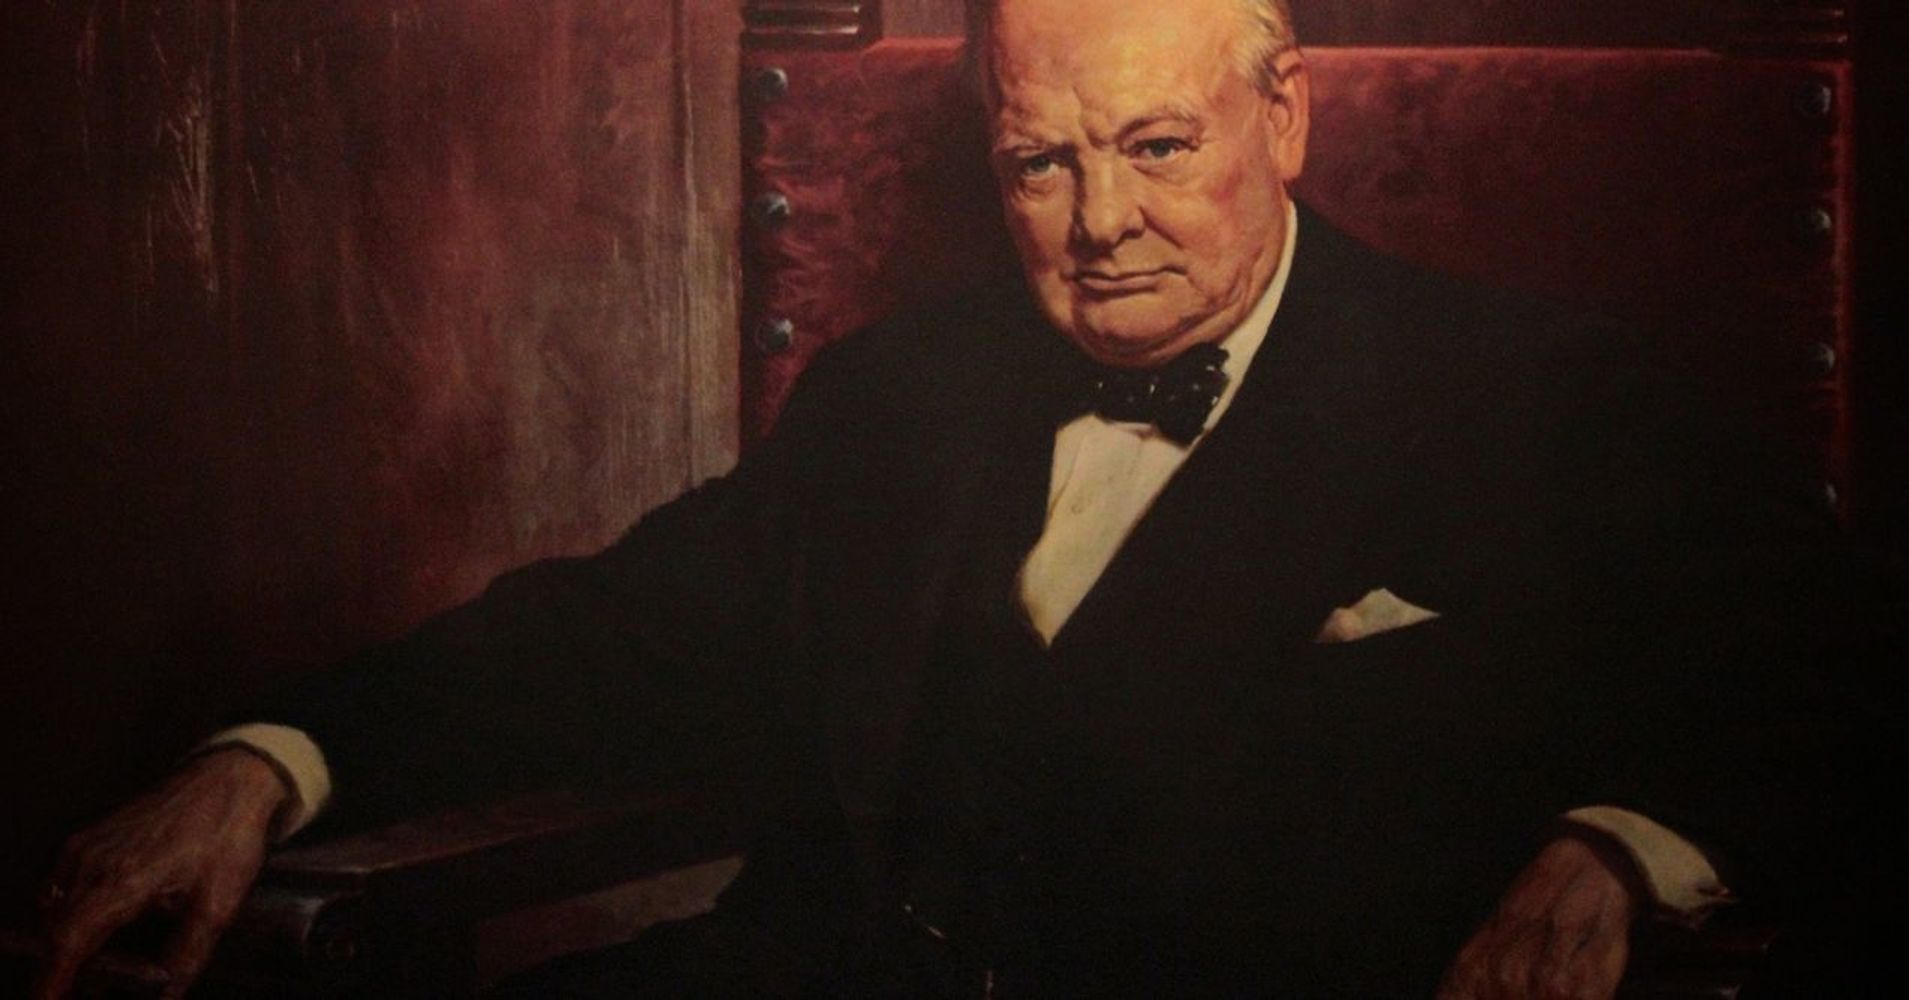 winston churchill essay on art Winston churchill's paintings star in an exhibit on the queen mary  the art of winston churchill exhibit aboard the queen mary, opening may 27  for they shall not be lonely, churchill .